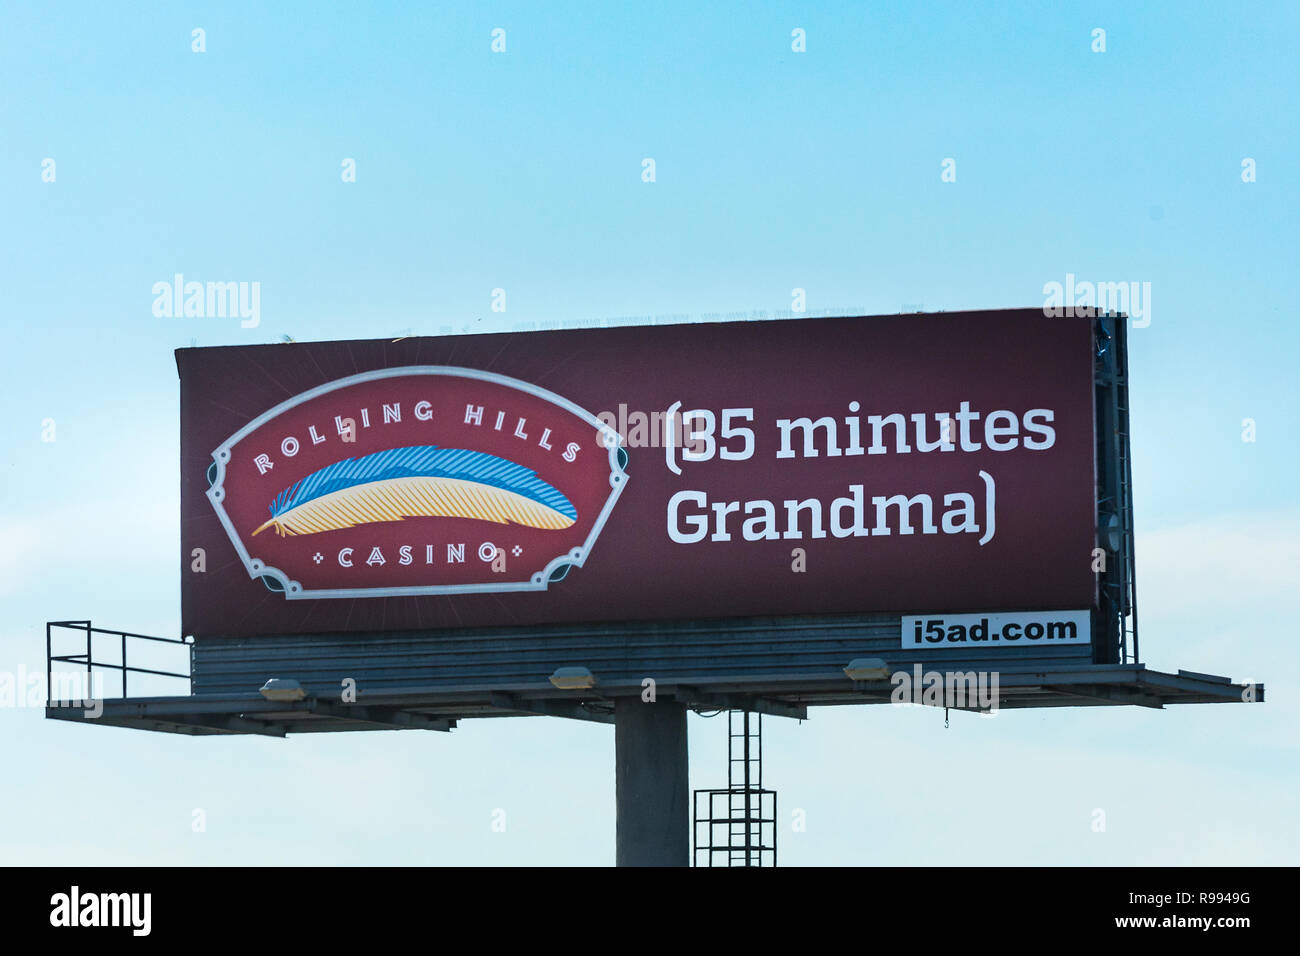 A whimsical sign for an Indian Casino along interstate 5 in Northern Calfornia - Stock Image